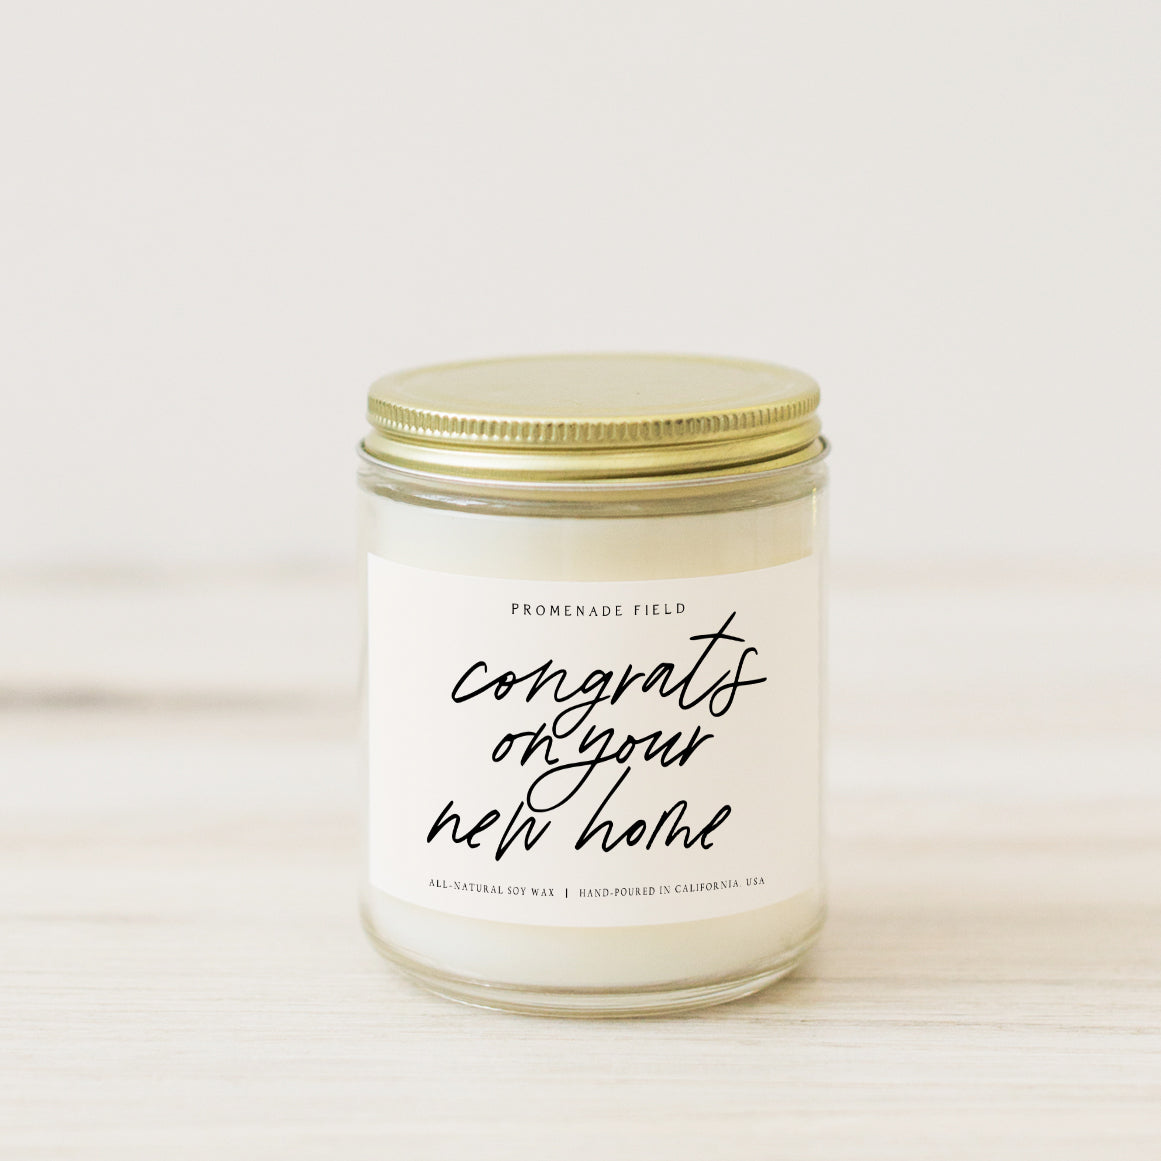 Congrats On Your New Home Candle